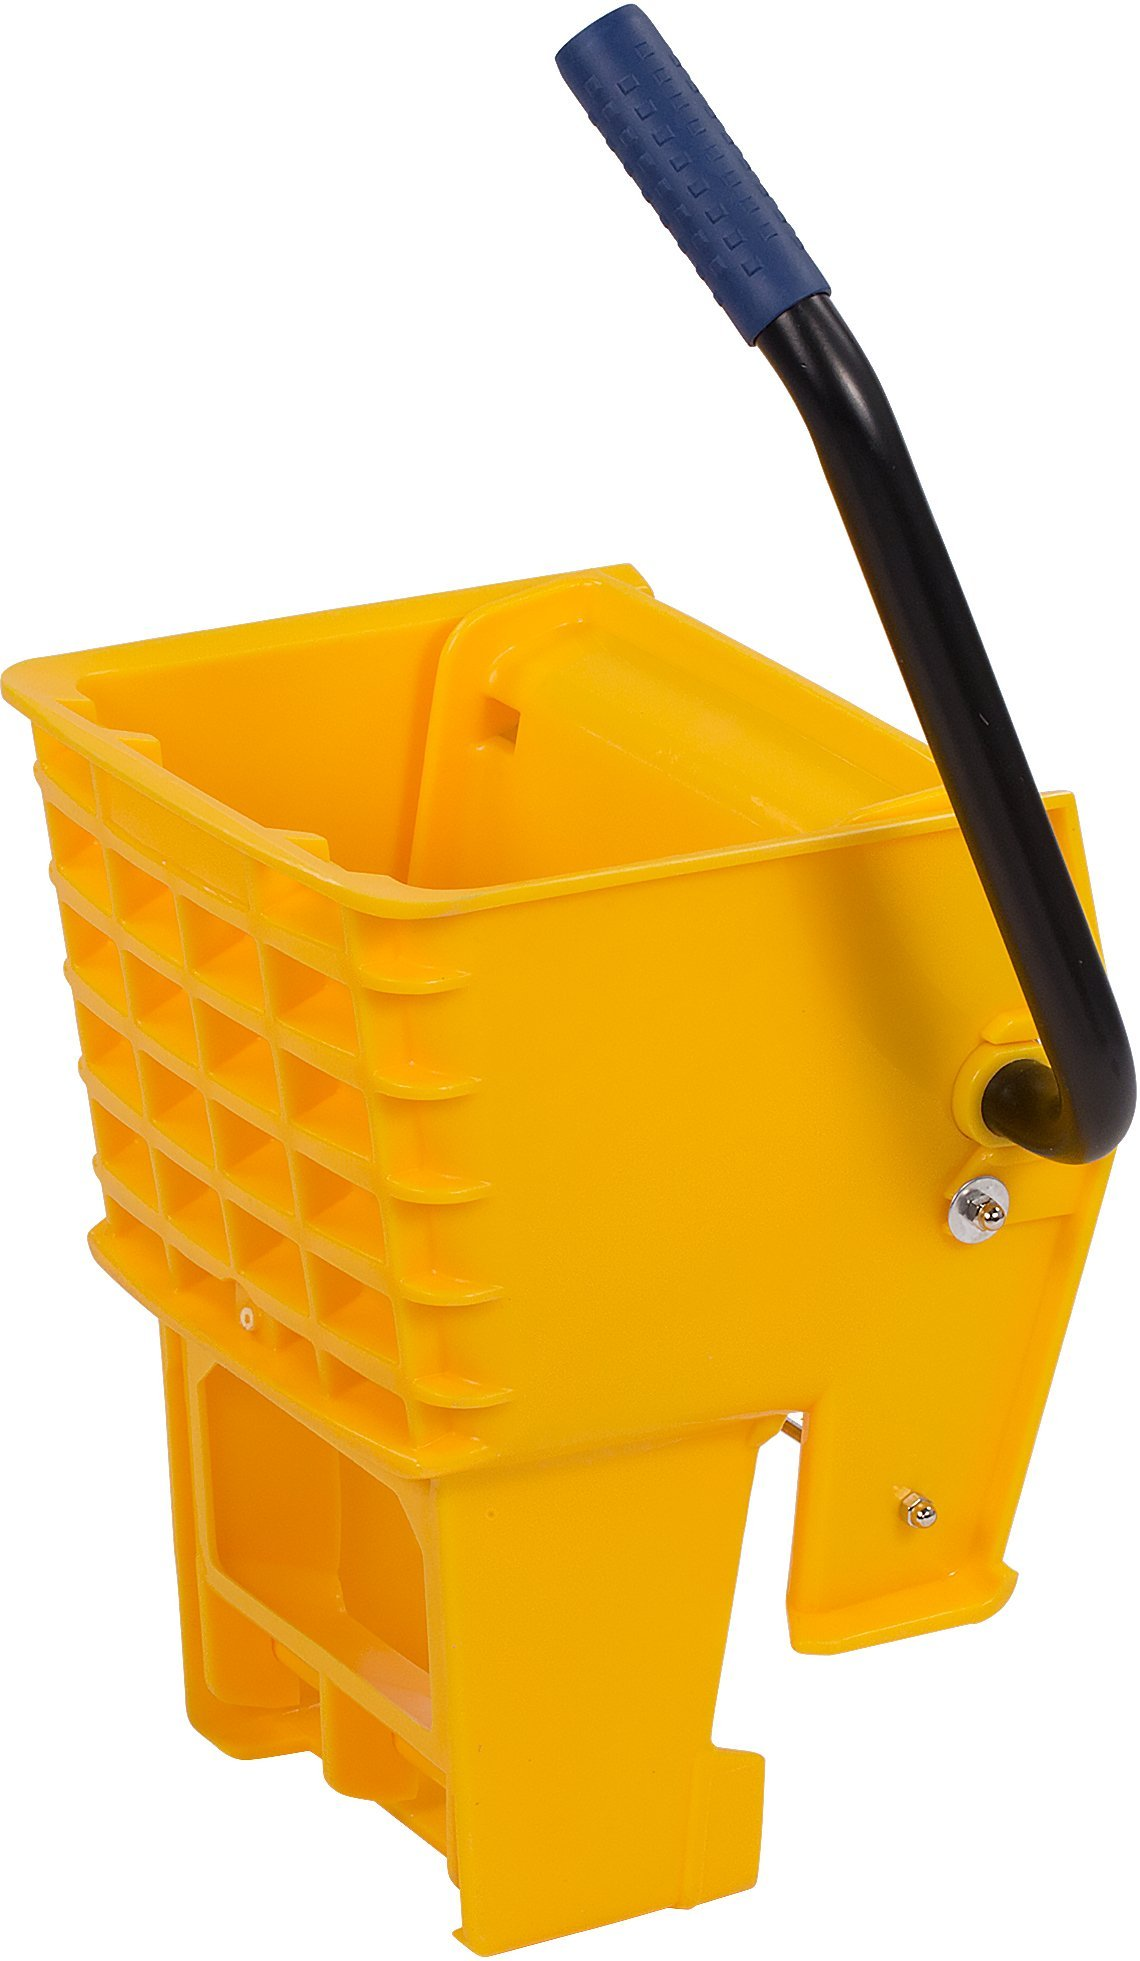 Carlisle 36908W04 Side Press Wringer for 26-qt. and 35-qt. Mop Bucket, 15'' L x 11'' W x 9.88'' H, Yellow